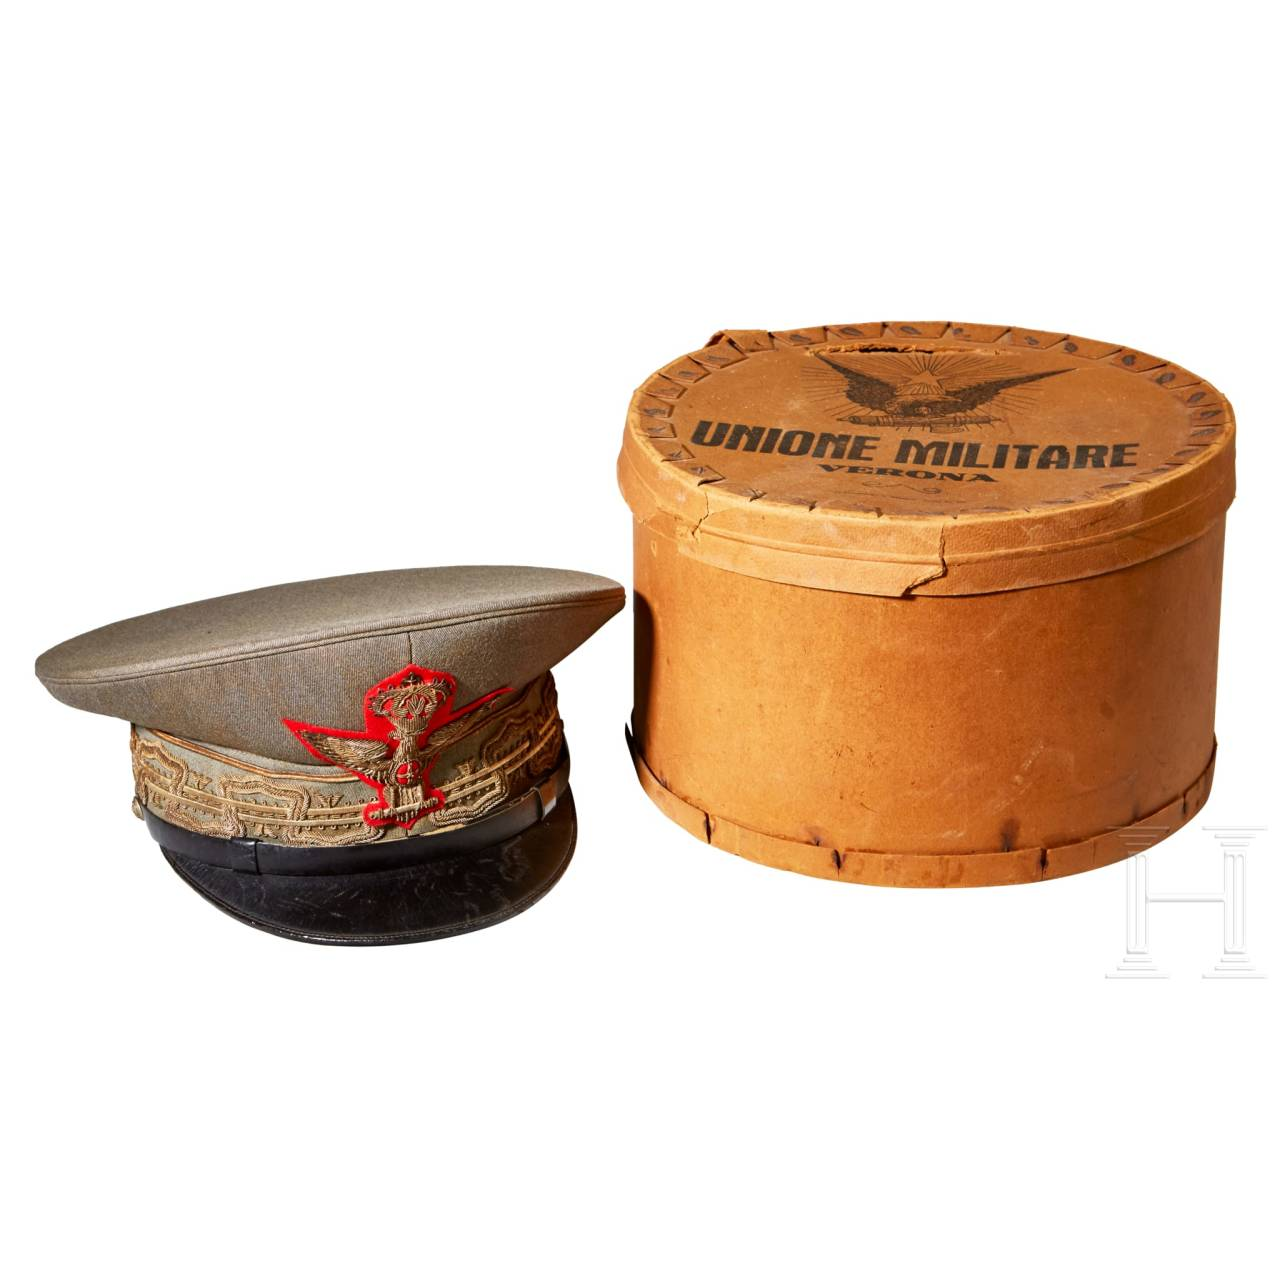 An Officer's General Rank Visor Cap with Storage Box